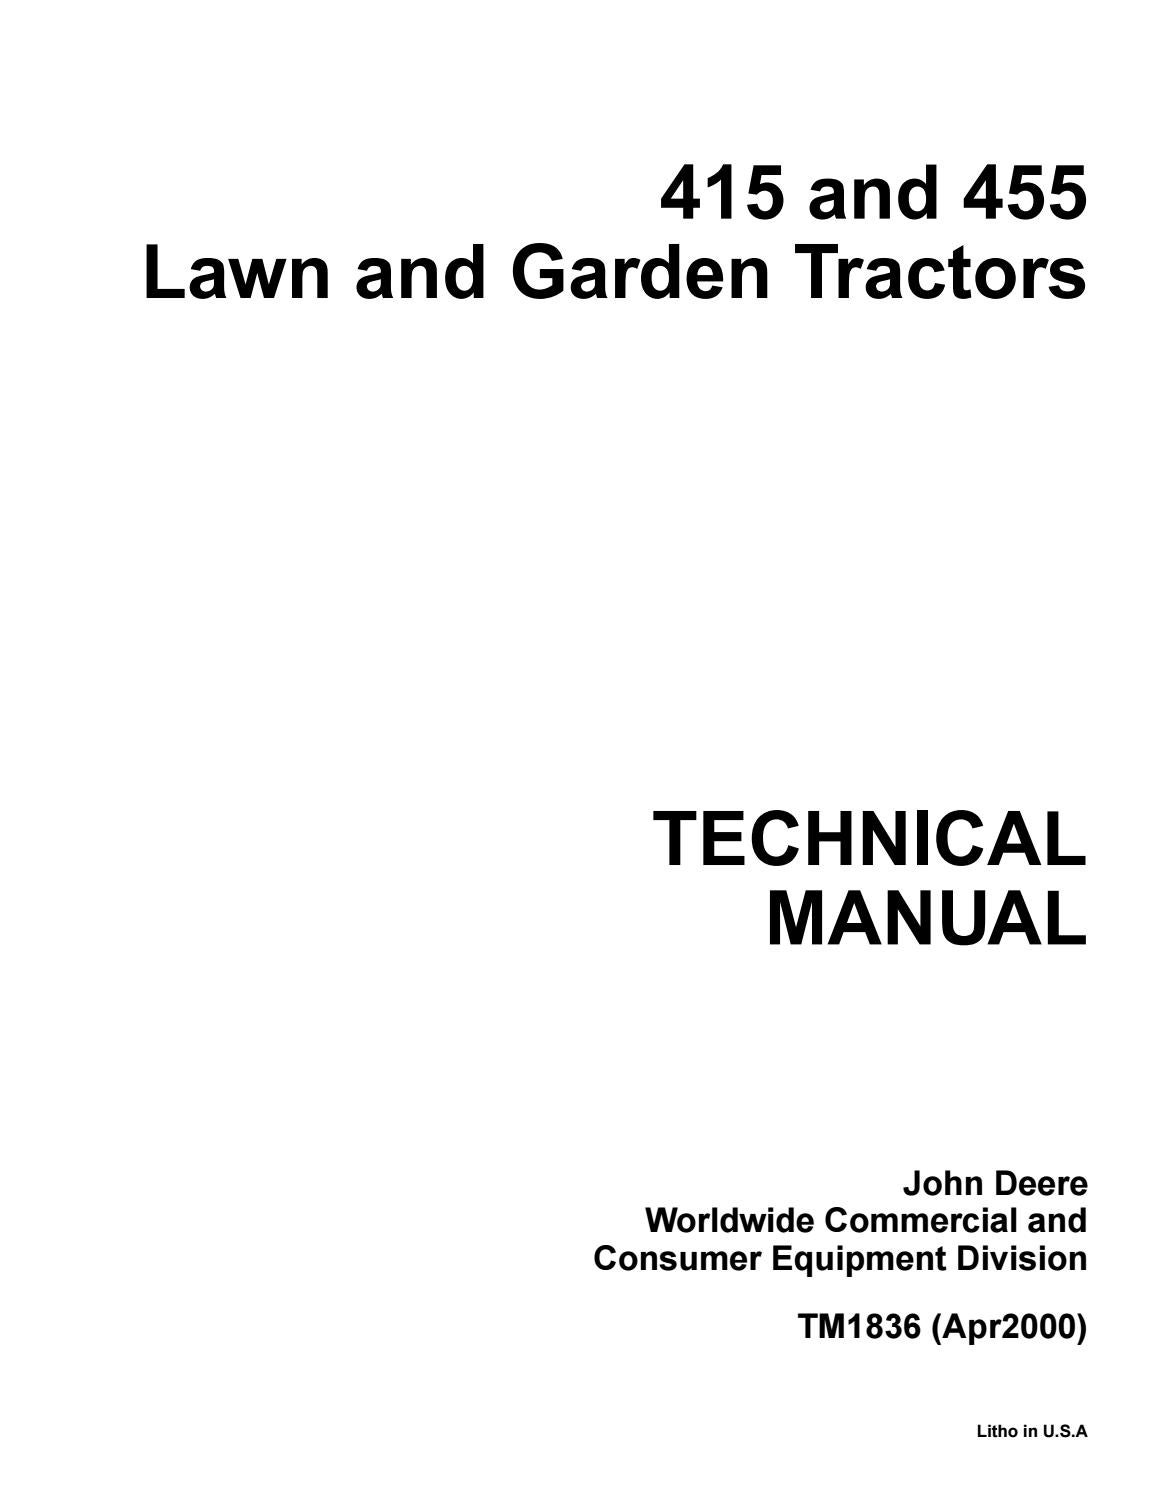 John Deere 455 Parts Diagram : deere, parts, diagram, Deere, Garden, Tractor, Service, Repair, Manual, Jhjnyiksmm, Issuu